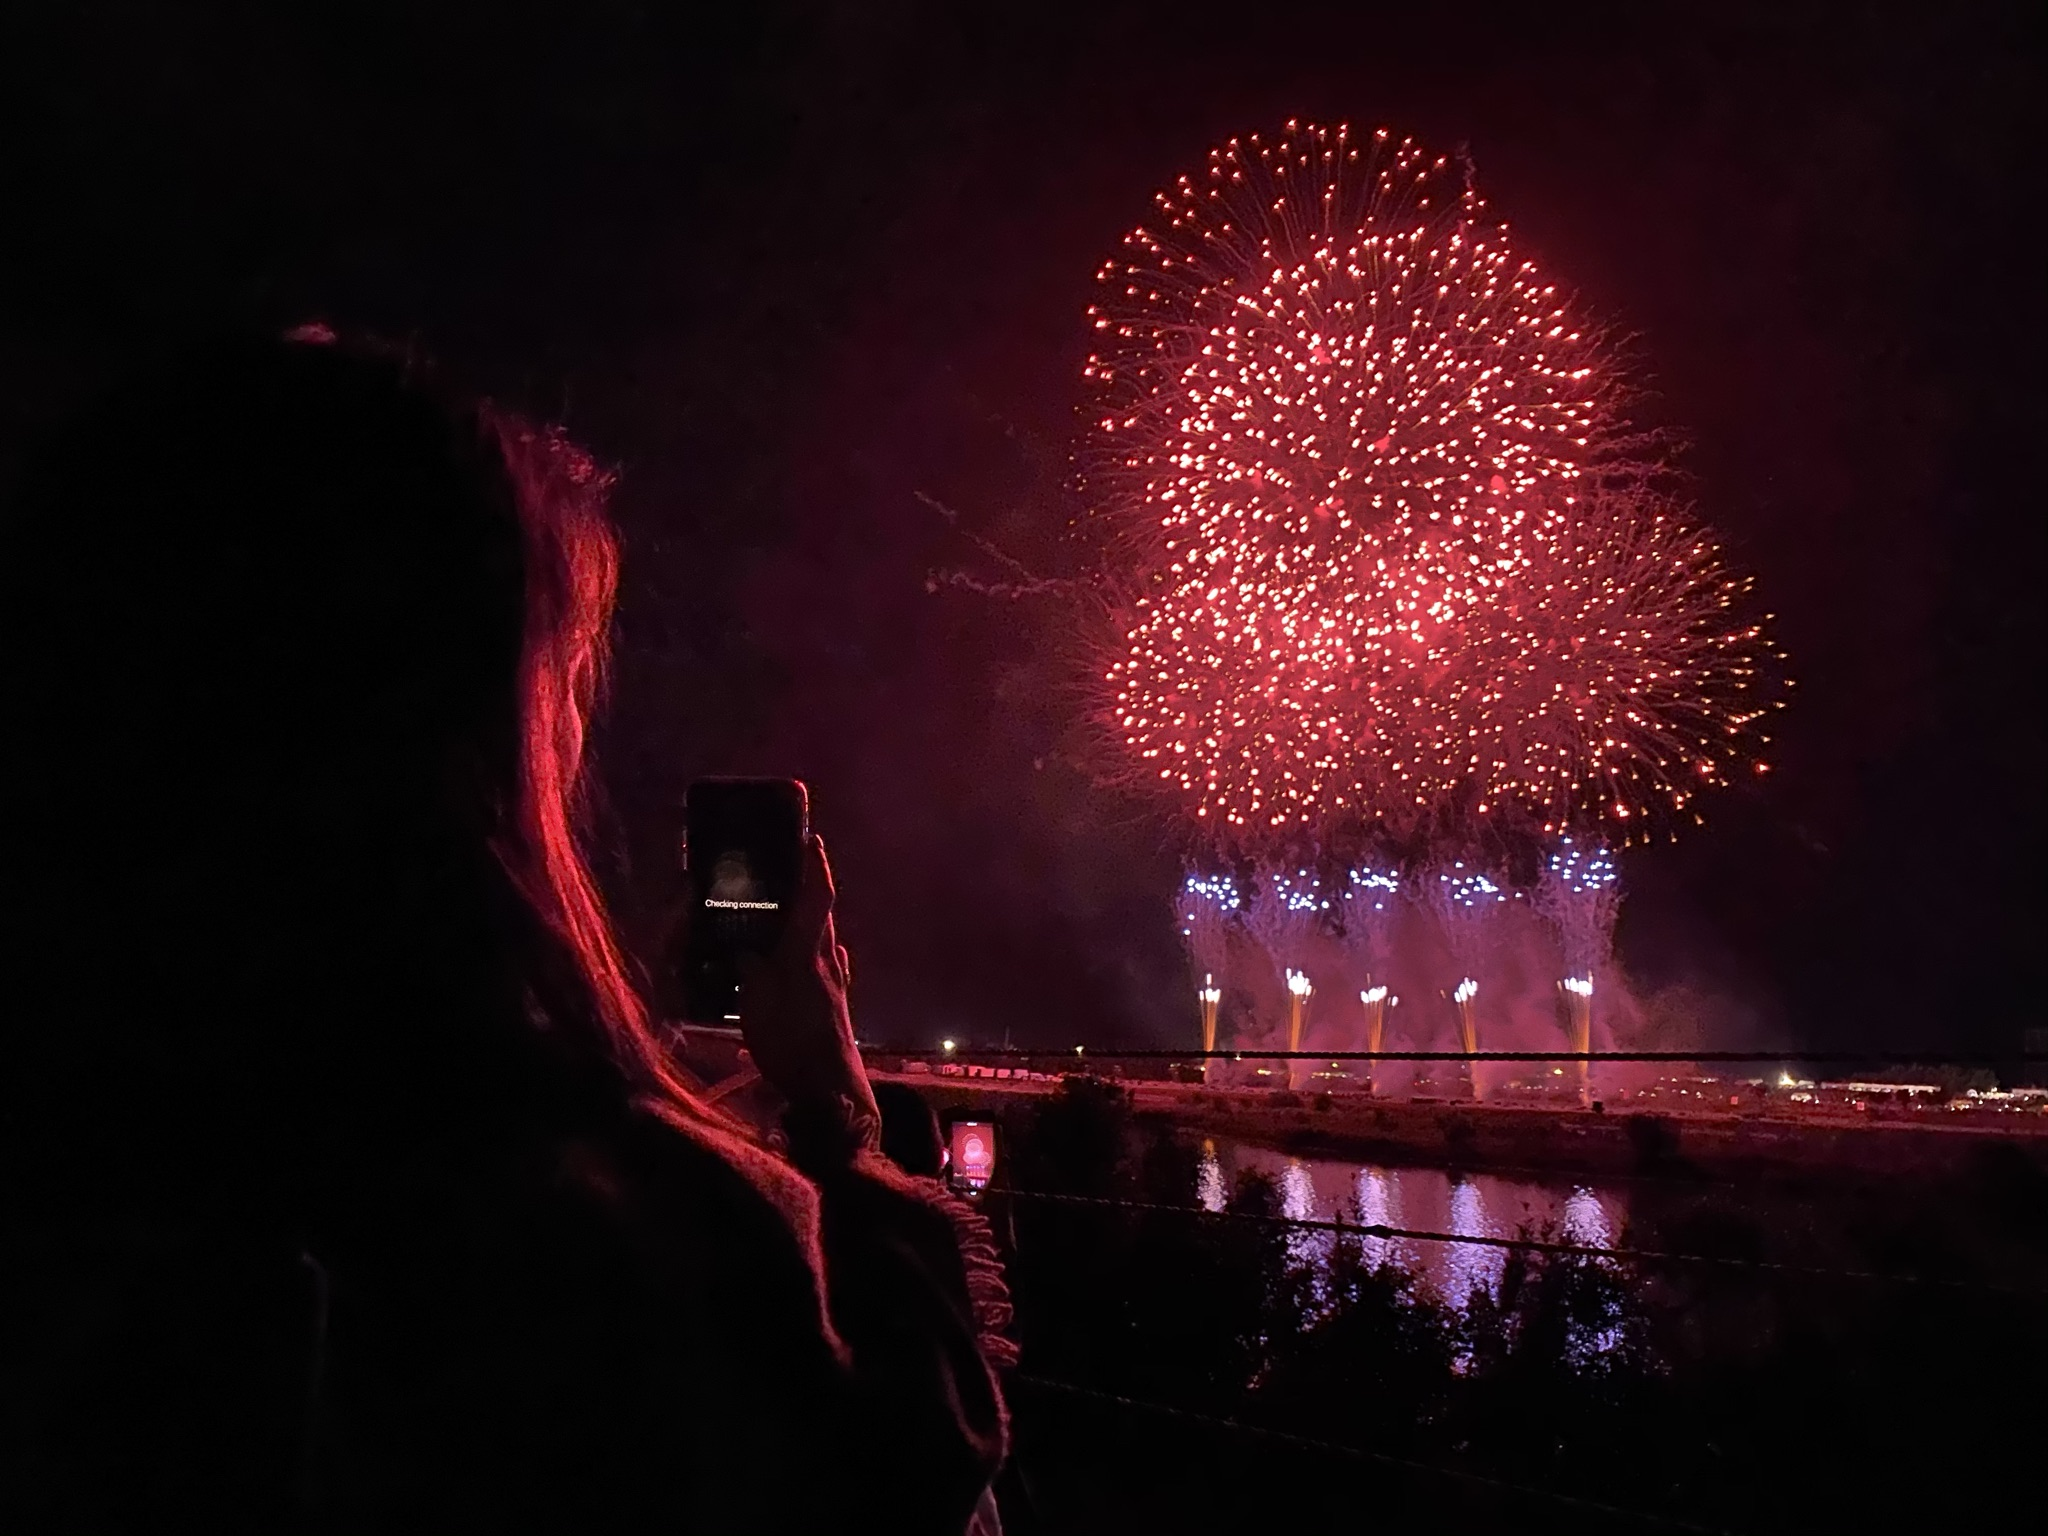 Fireworks photos with the iPhone 11 Pro Max